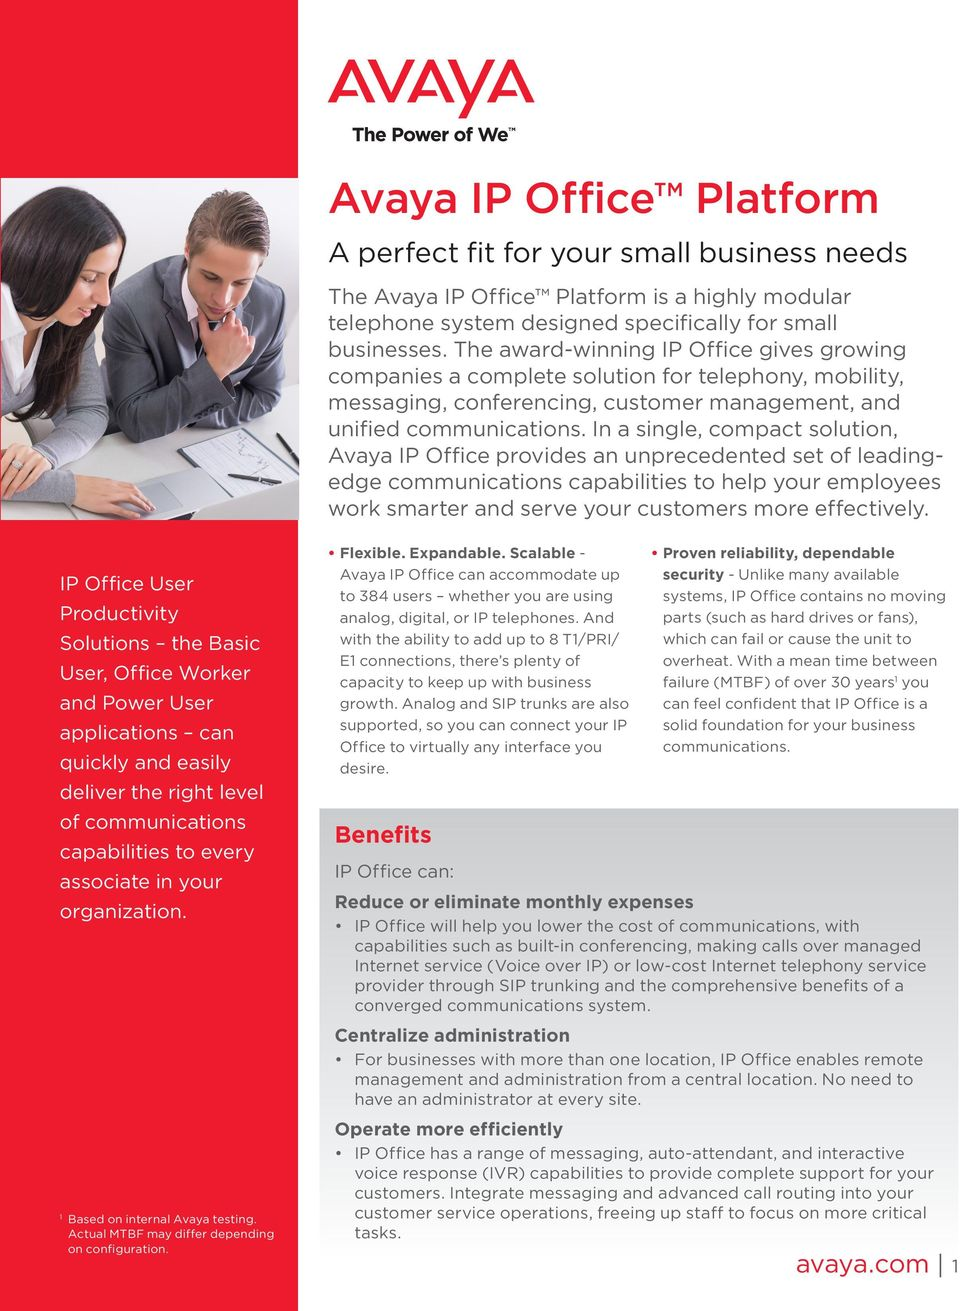 In a single, compact solution, Avaya IP Office provides an unprecedented set of leadingedge communications capabilities to help your employees work smarter and serve your customers more effectively.